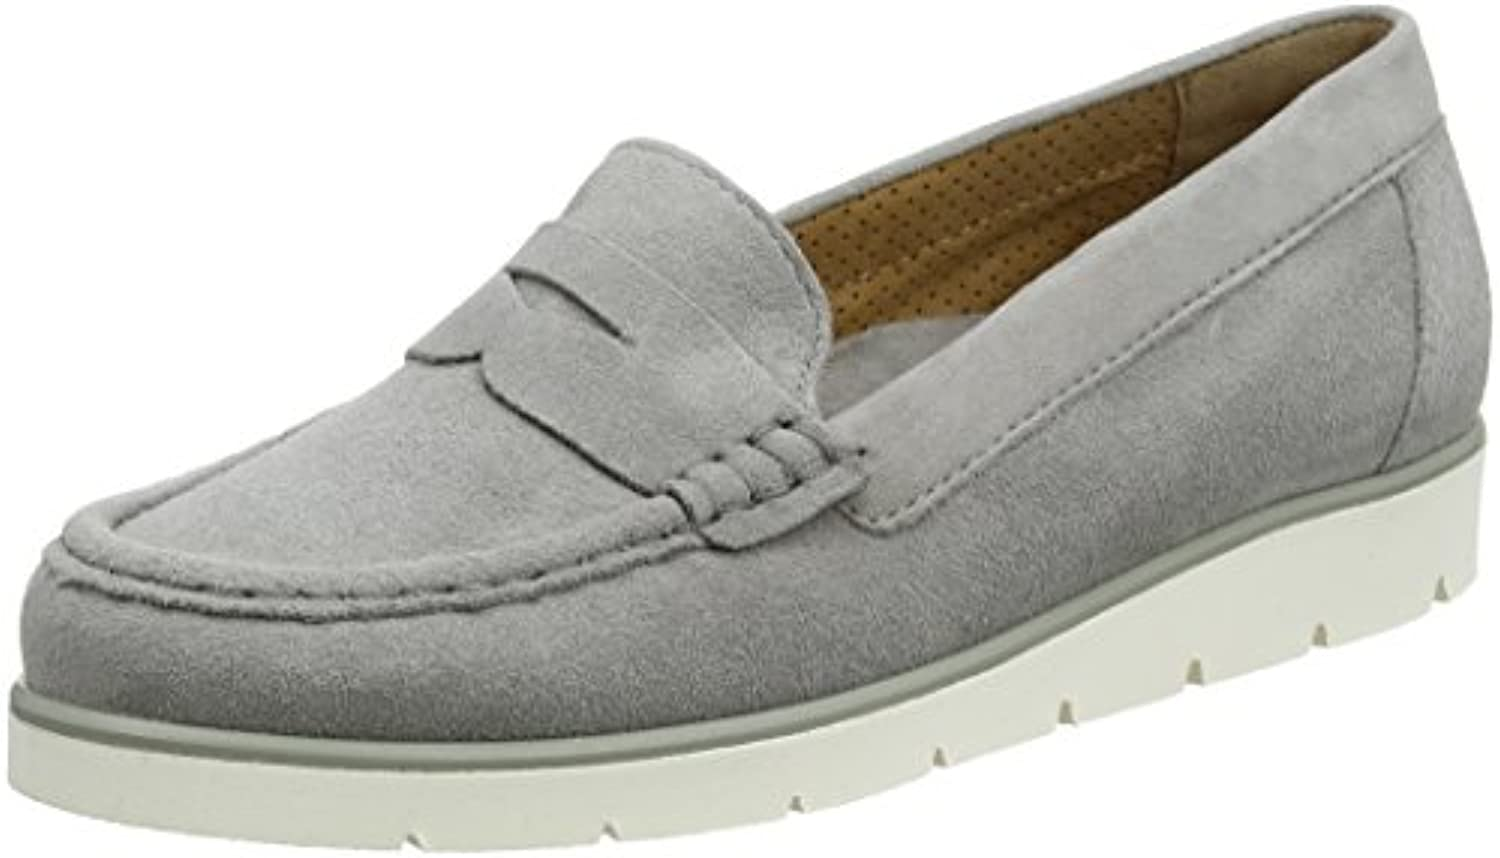 Gabor Shoes Casual, Gabor Casual, Shoes Mocassins Femme 959fc4